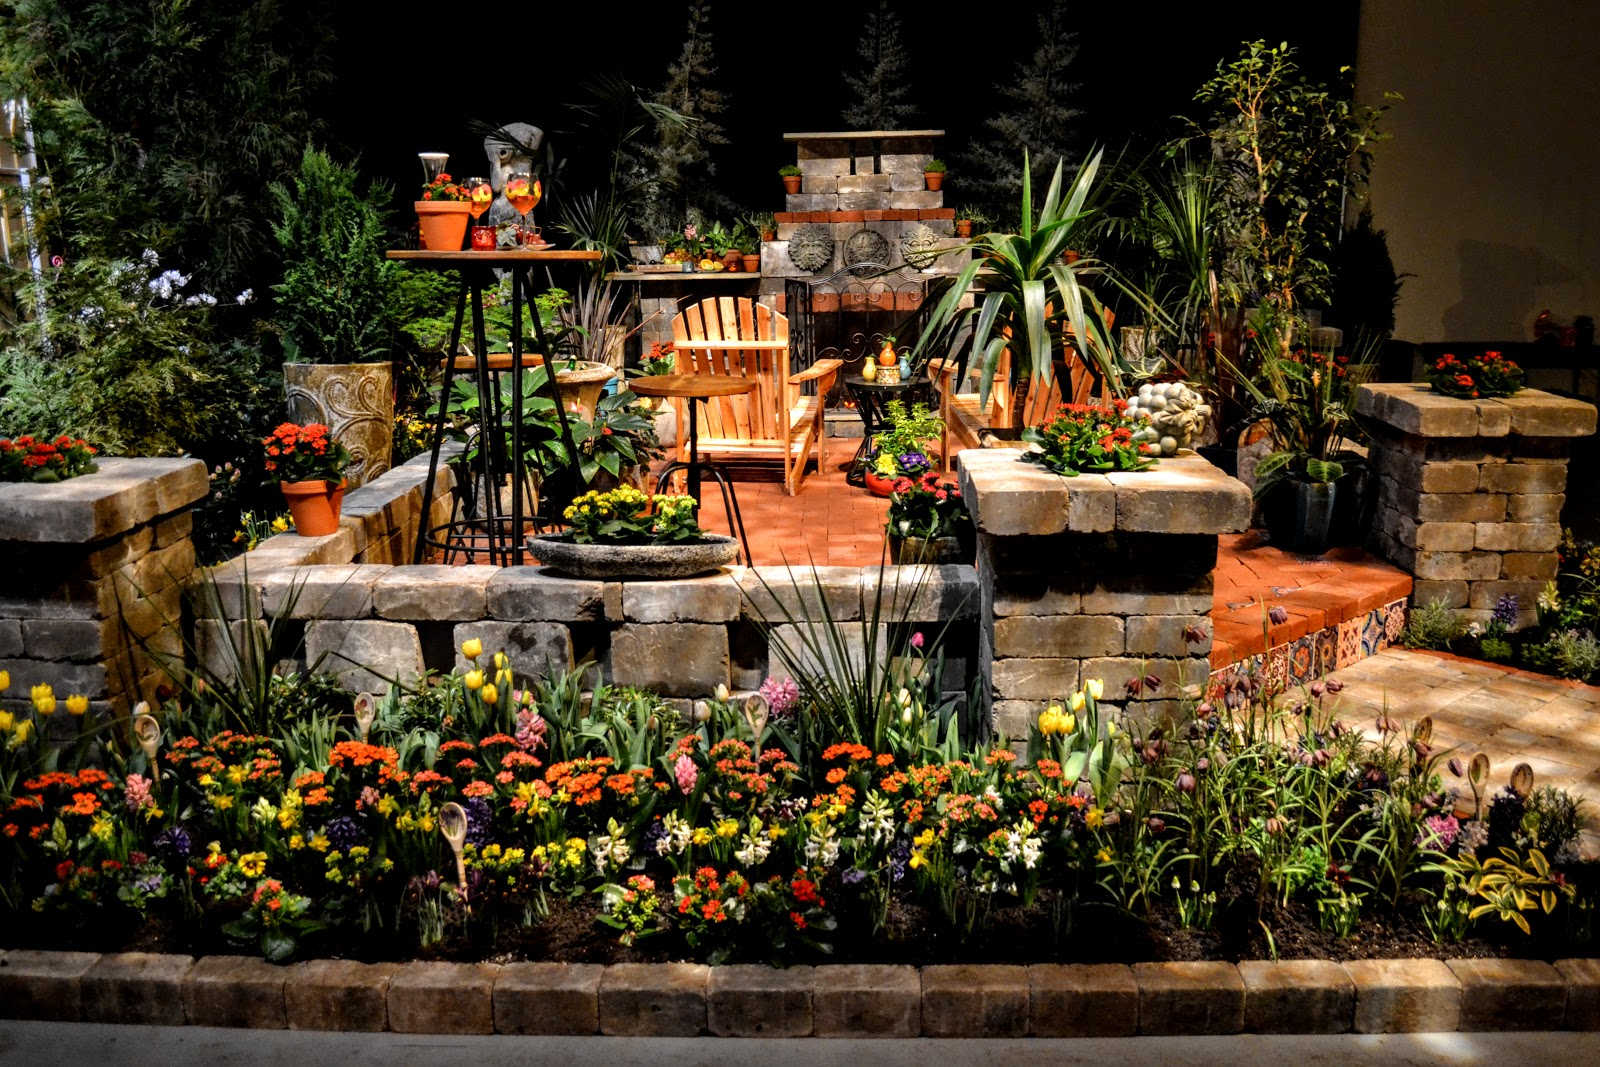 The Outlaw Gardener: The Northwest Flower and Garden Show - A Preview